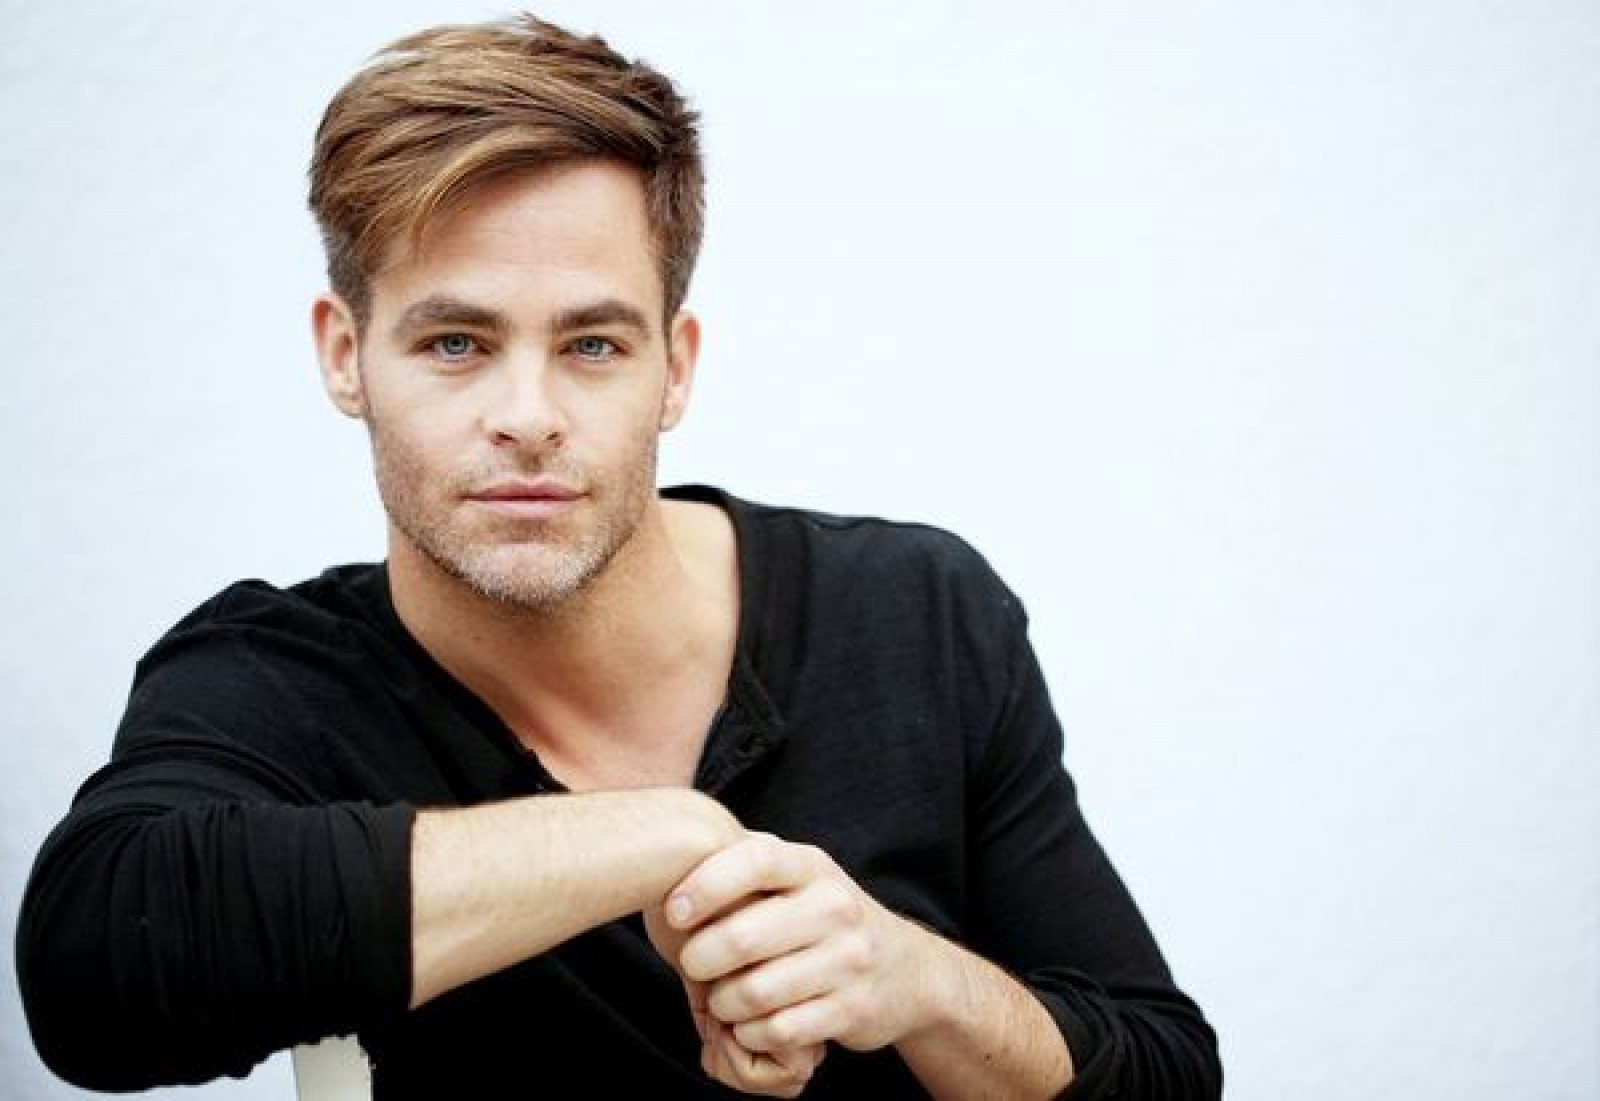 good-looks-too-hard-to-handle-american-actor-chris-pine-talks-about-the-burden-of-being-handsome.jpg